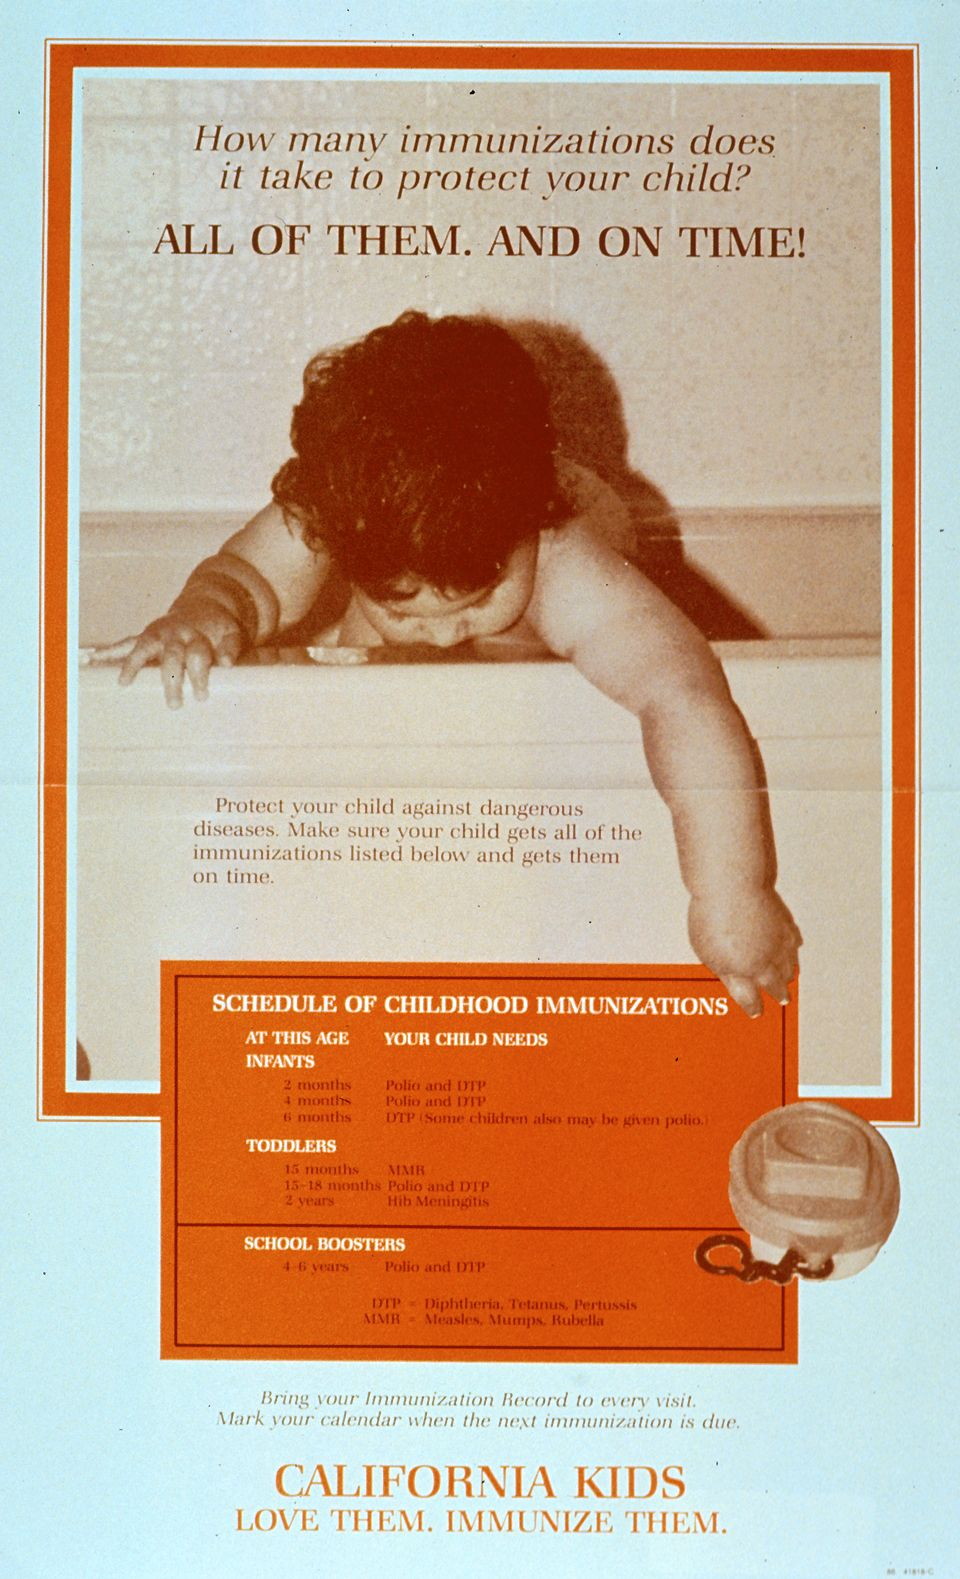 How Many Immunizations Does It Take. Reproduced with permission of the California Department of Health. [California : Dept. of Health Services, Immunization Unit, 1986]. Image A025876 from the Images from the History of Medicine (IHM).